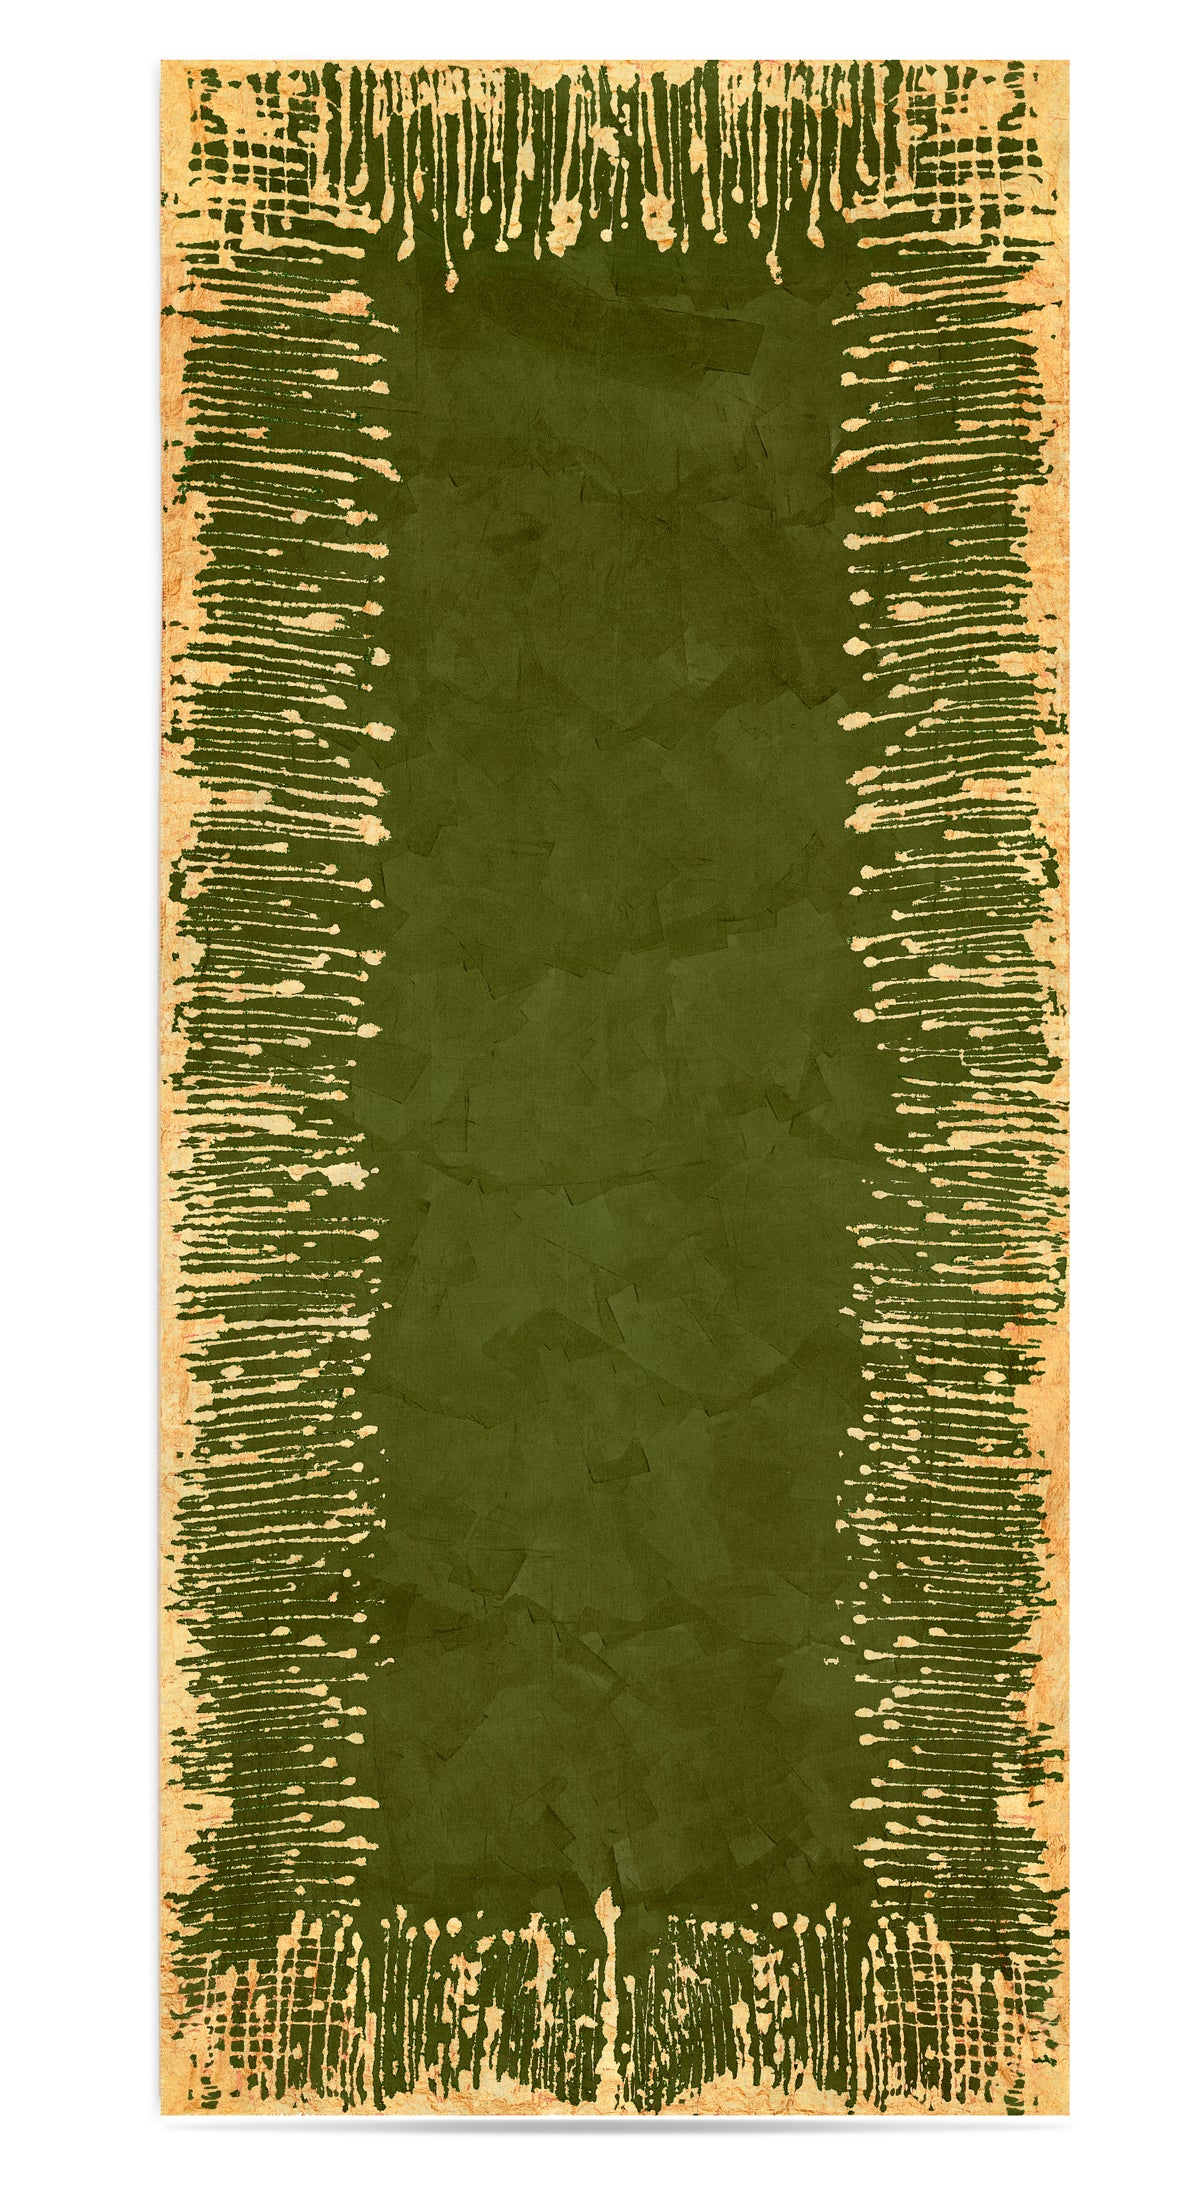 Ink Linen Tablecloth in Avocado Green with Gold Drips